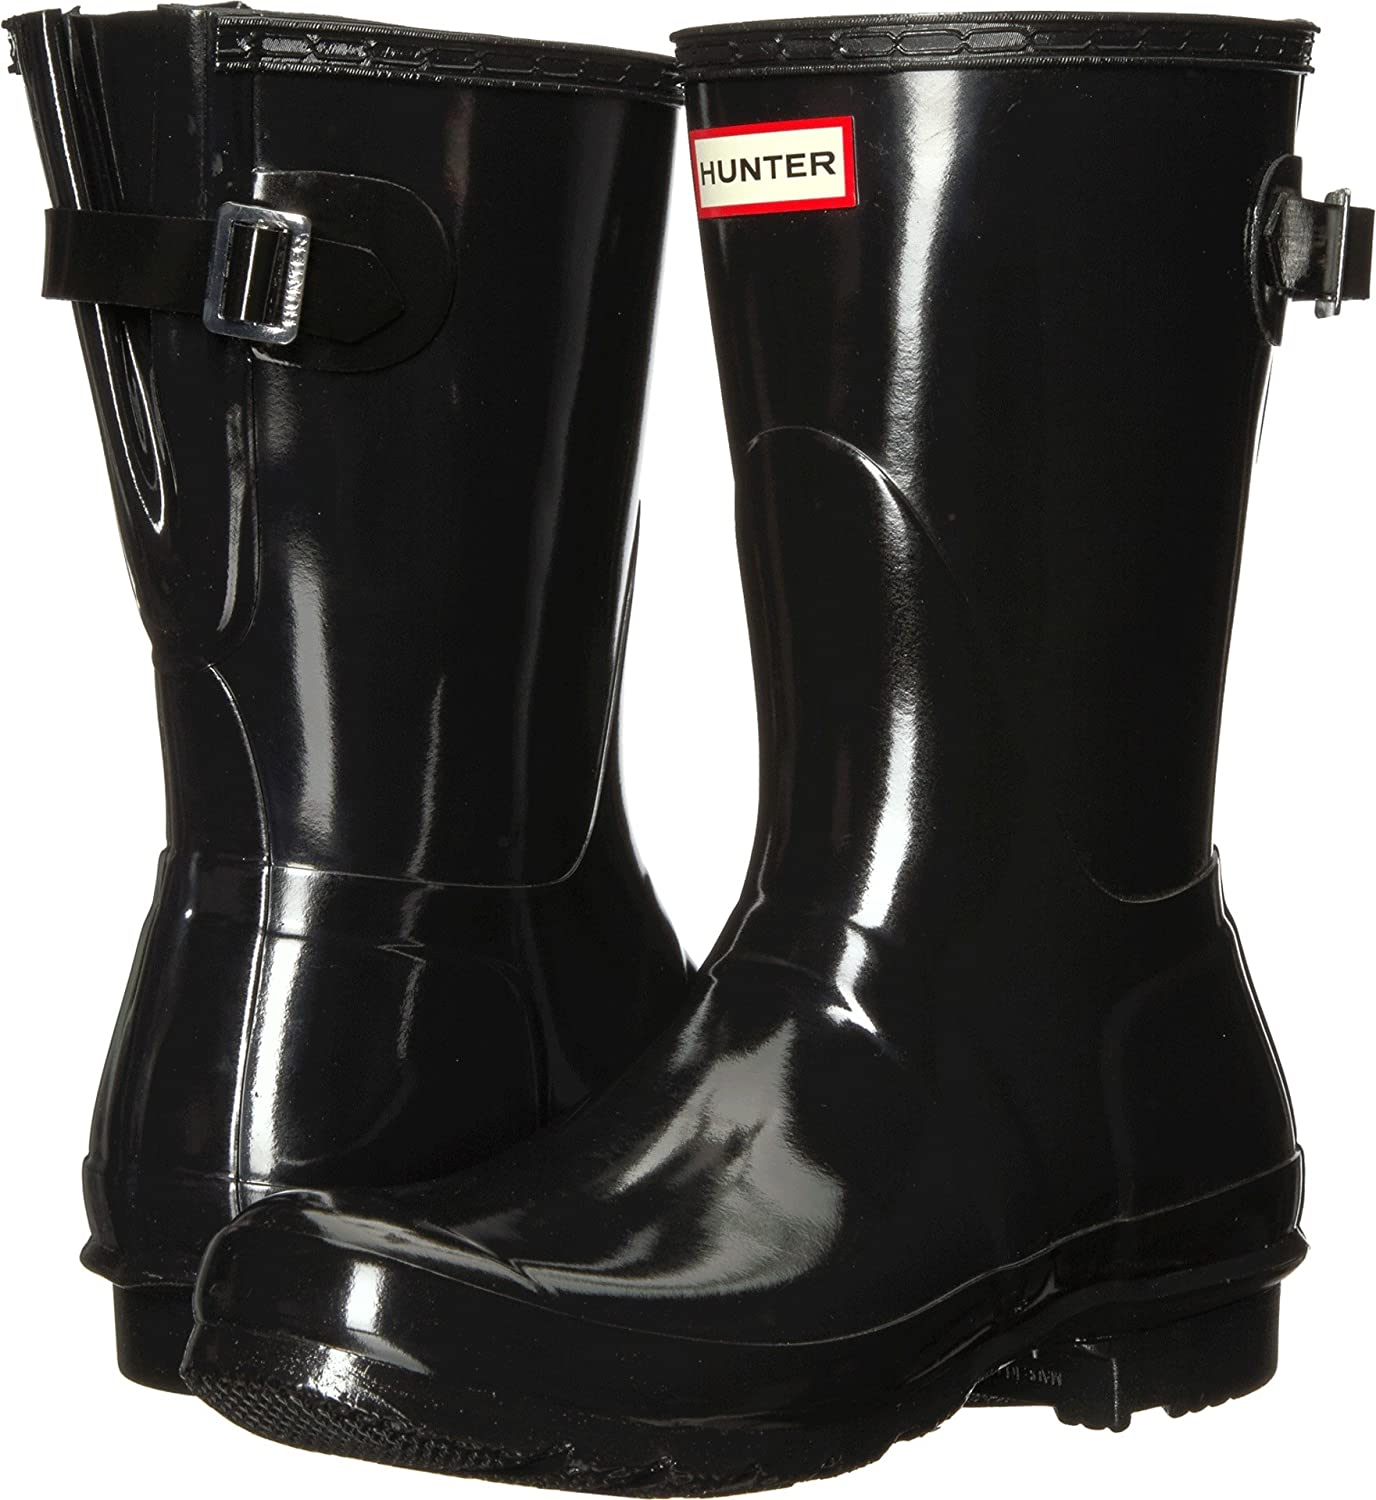 Hunter Womens Original Back Adjustable Short Gloss Rain Boots B079F2C6XP 7 M US|Black